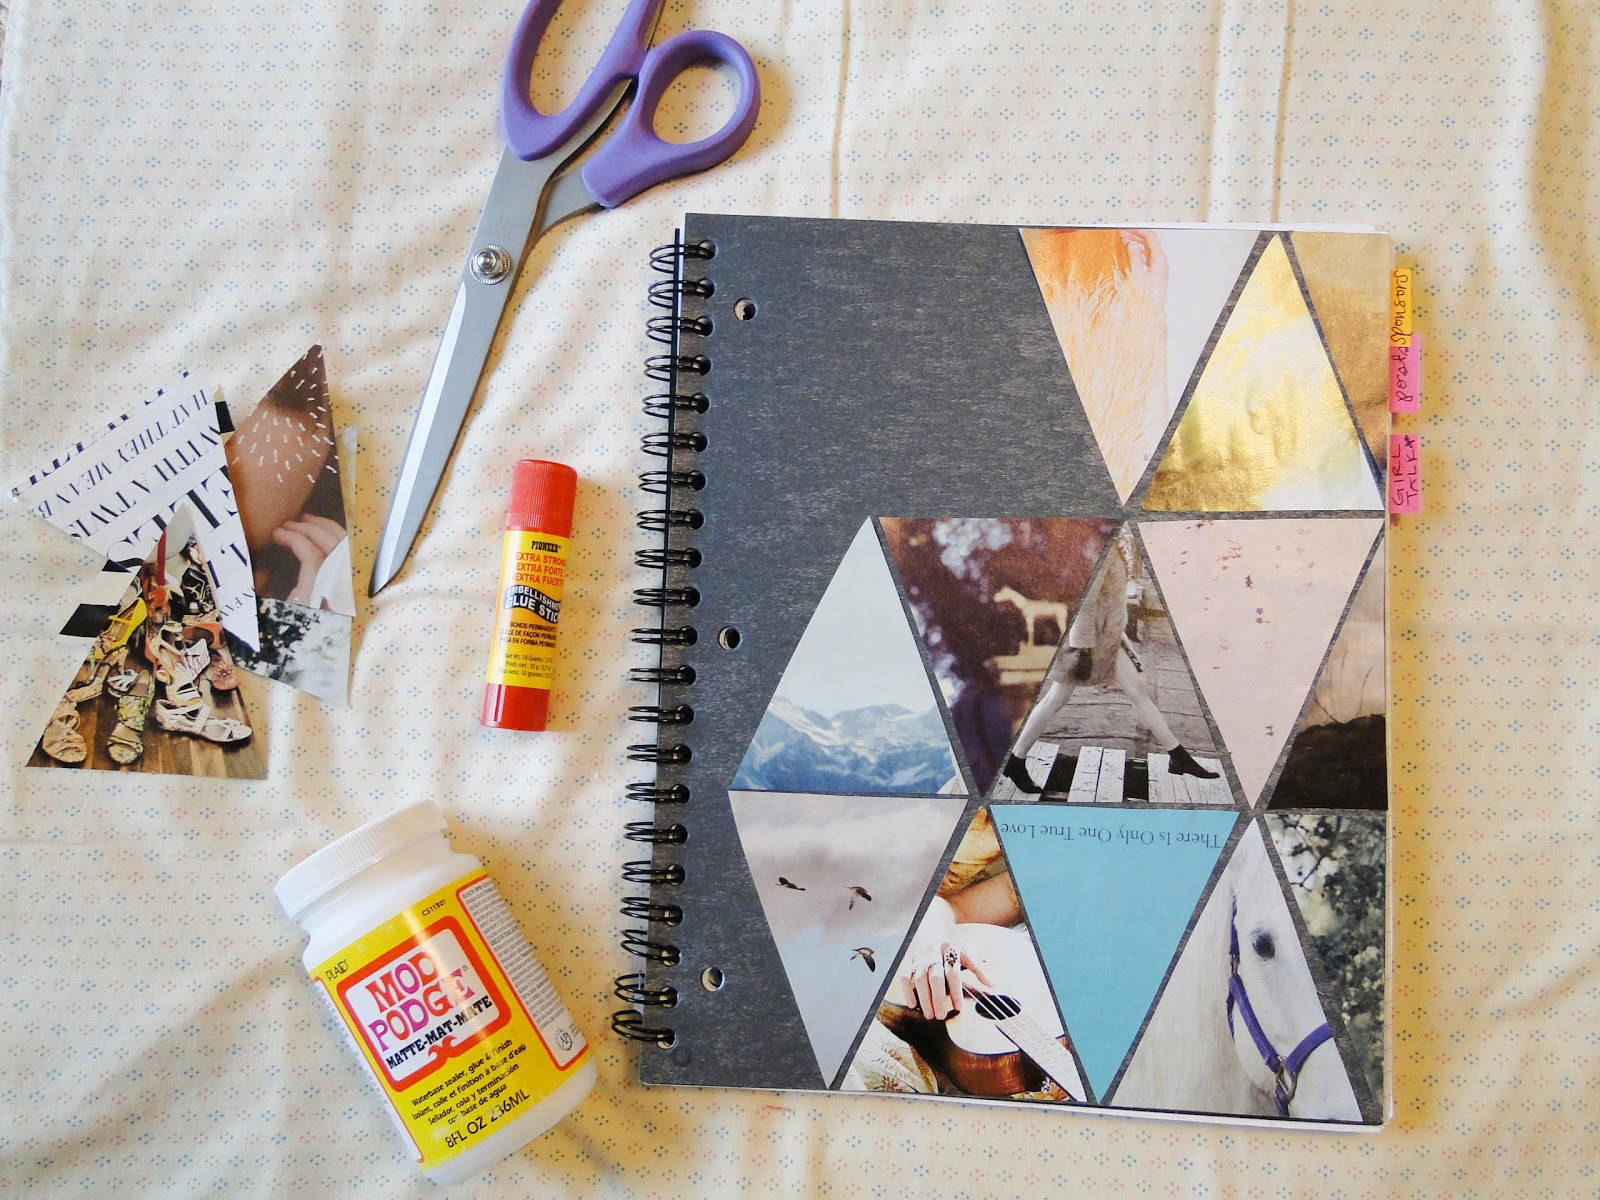 Pie n 39 the sky triangle love diy for Back to school notebook decoration ideas